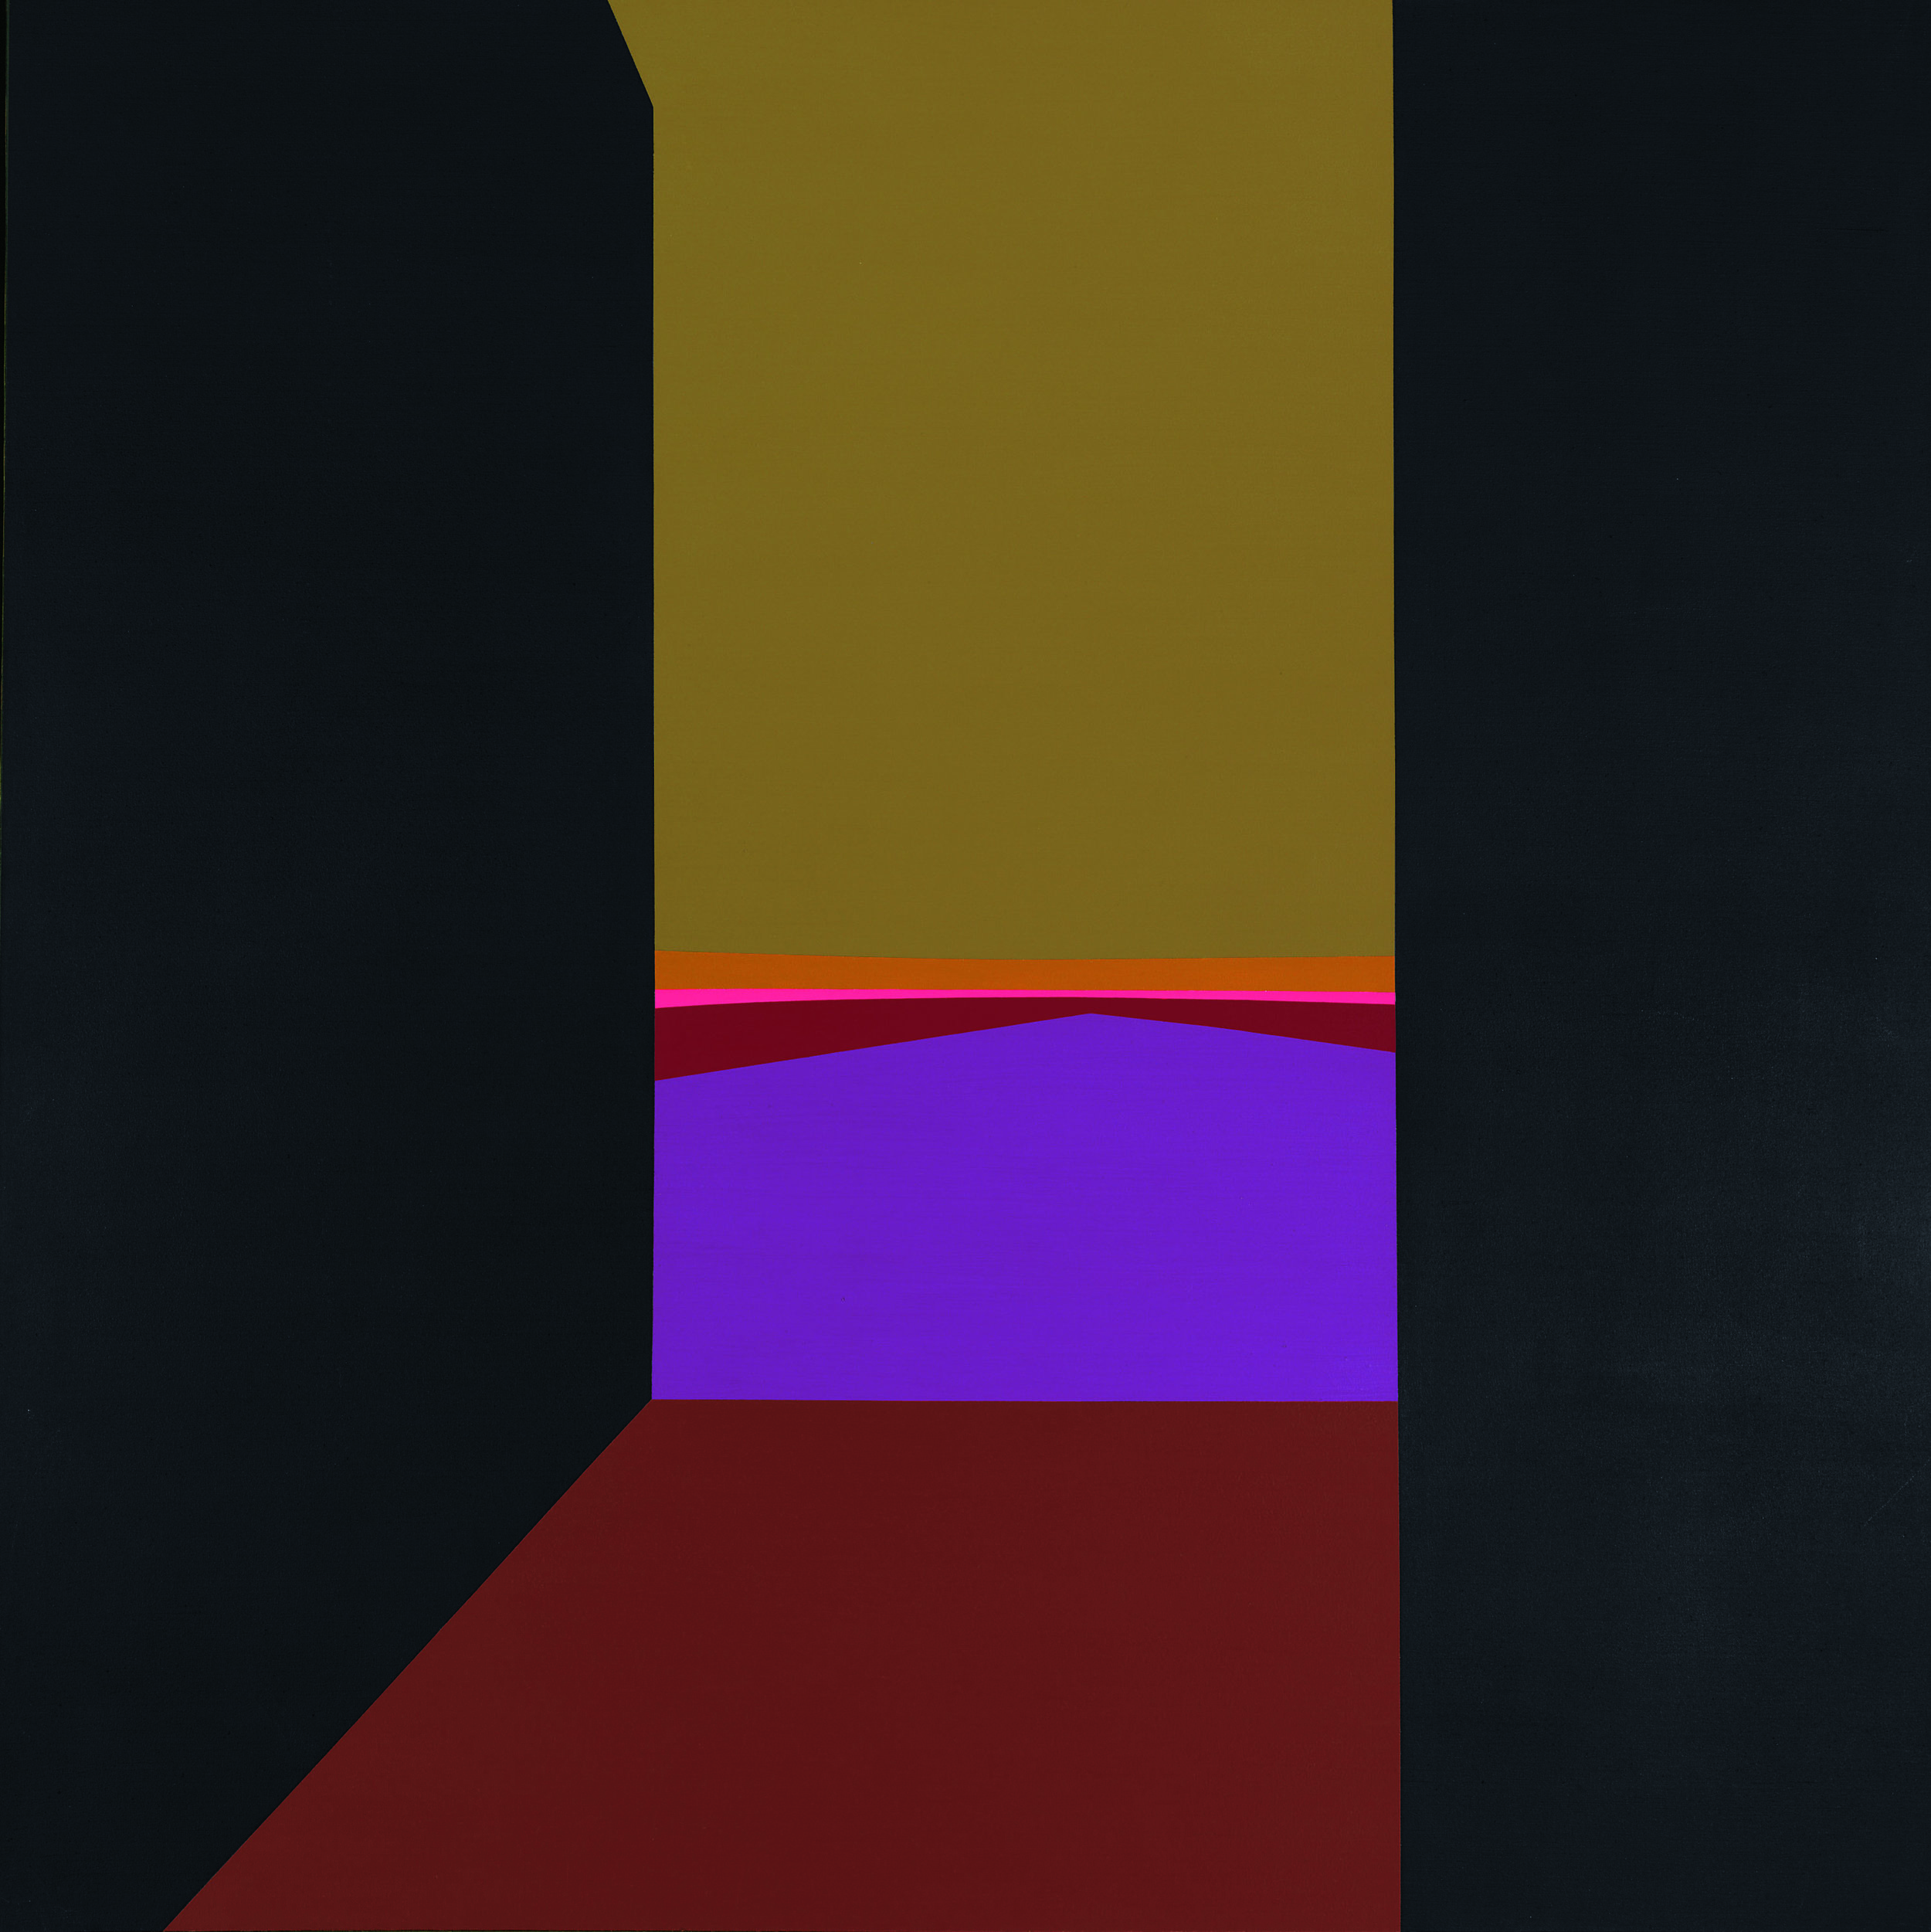 Evening , 1964  oil on canvas 60 x 60 inches; 152.4 x 152.4 centimeters